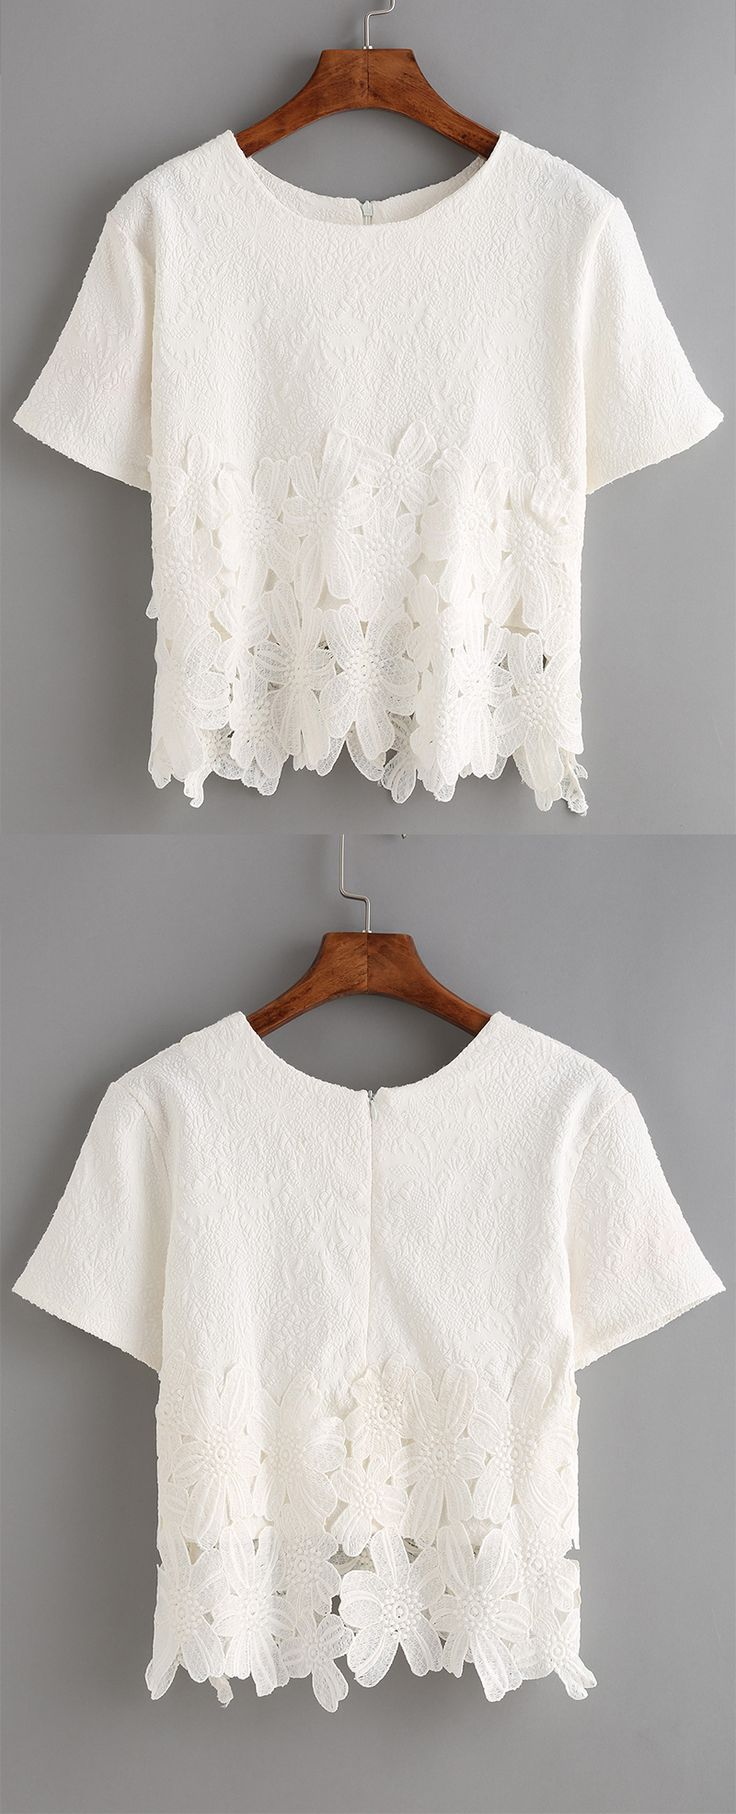 Absolutely love the delicate lace insert jacquard on this soft t-shirt. Super cute white lace tee. Best fo